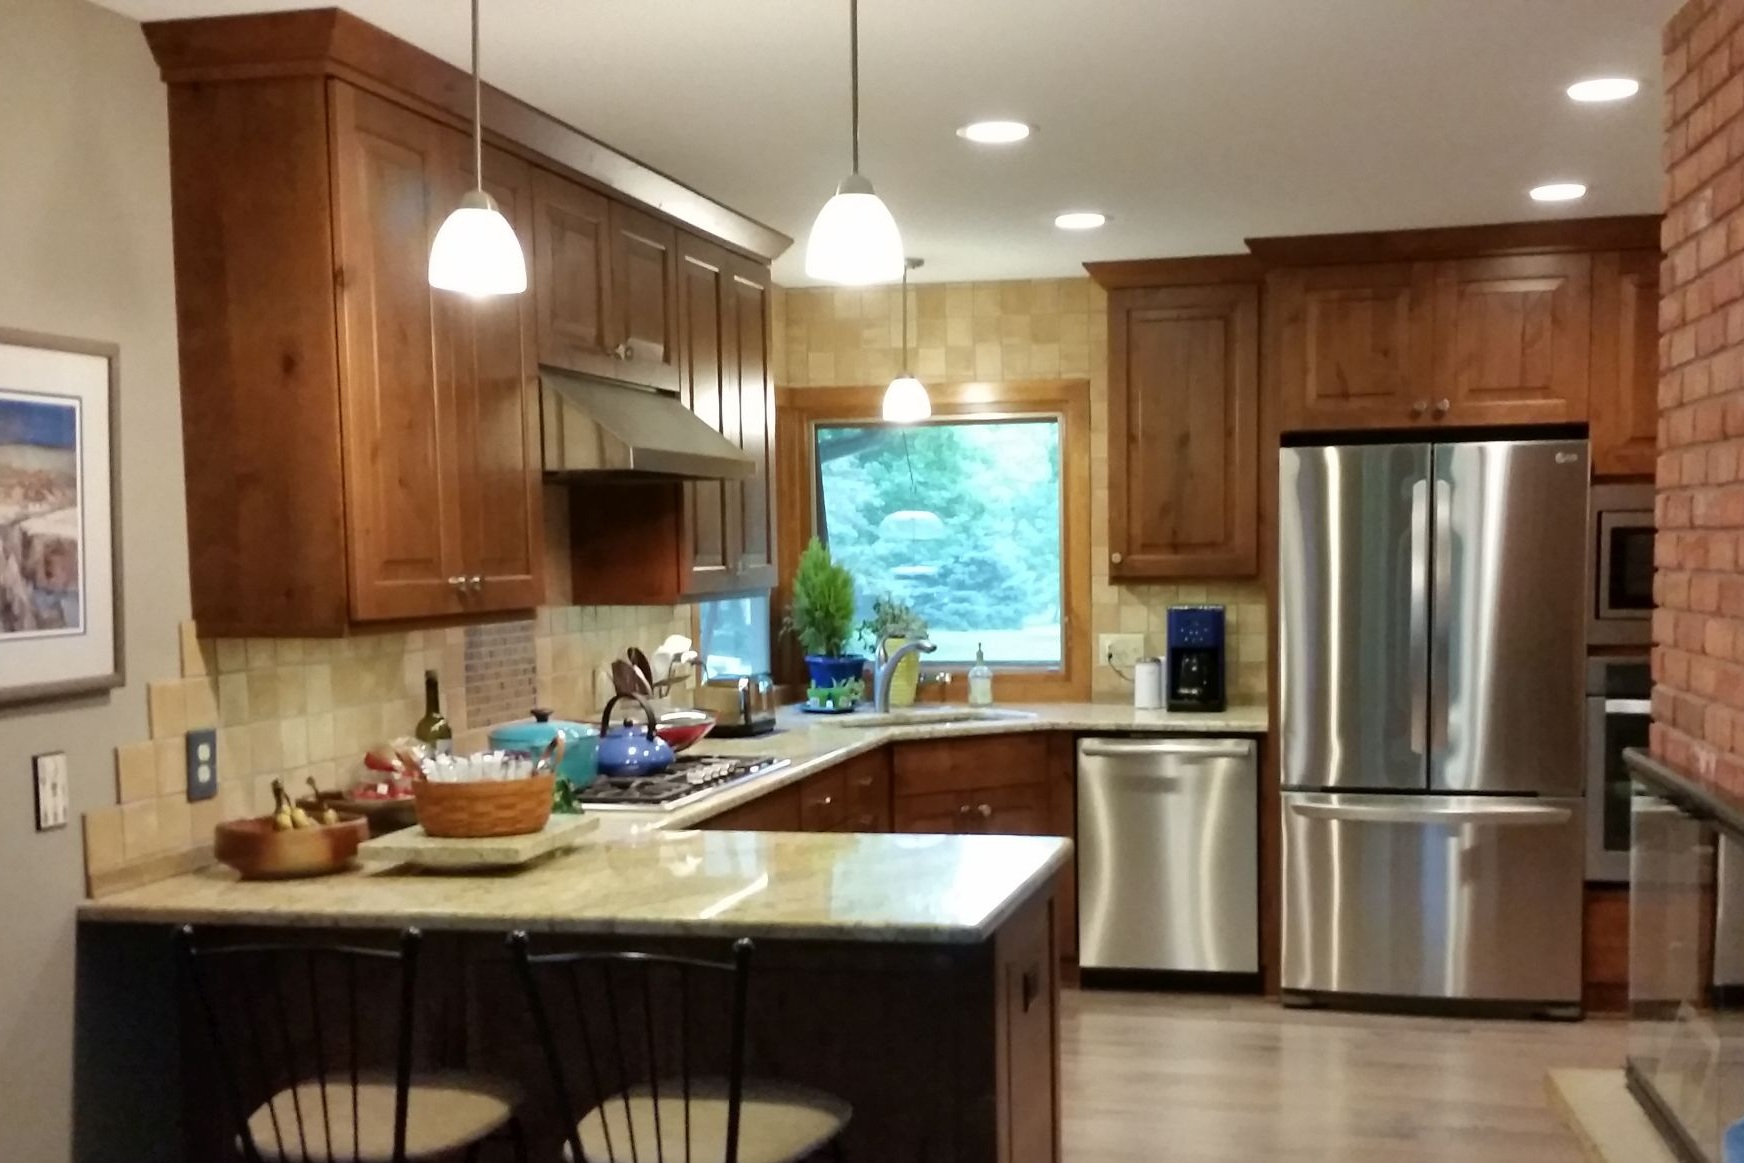 Kitchen remodel with updated layout, new cabinets, and new appliances.